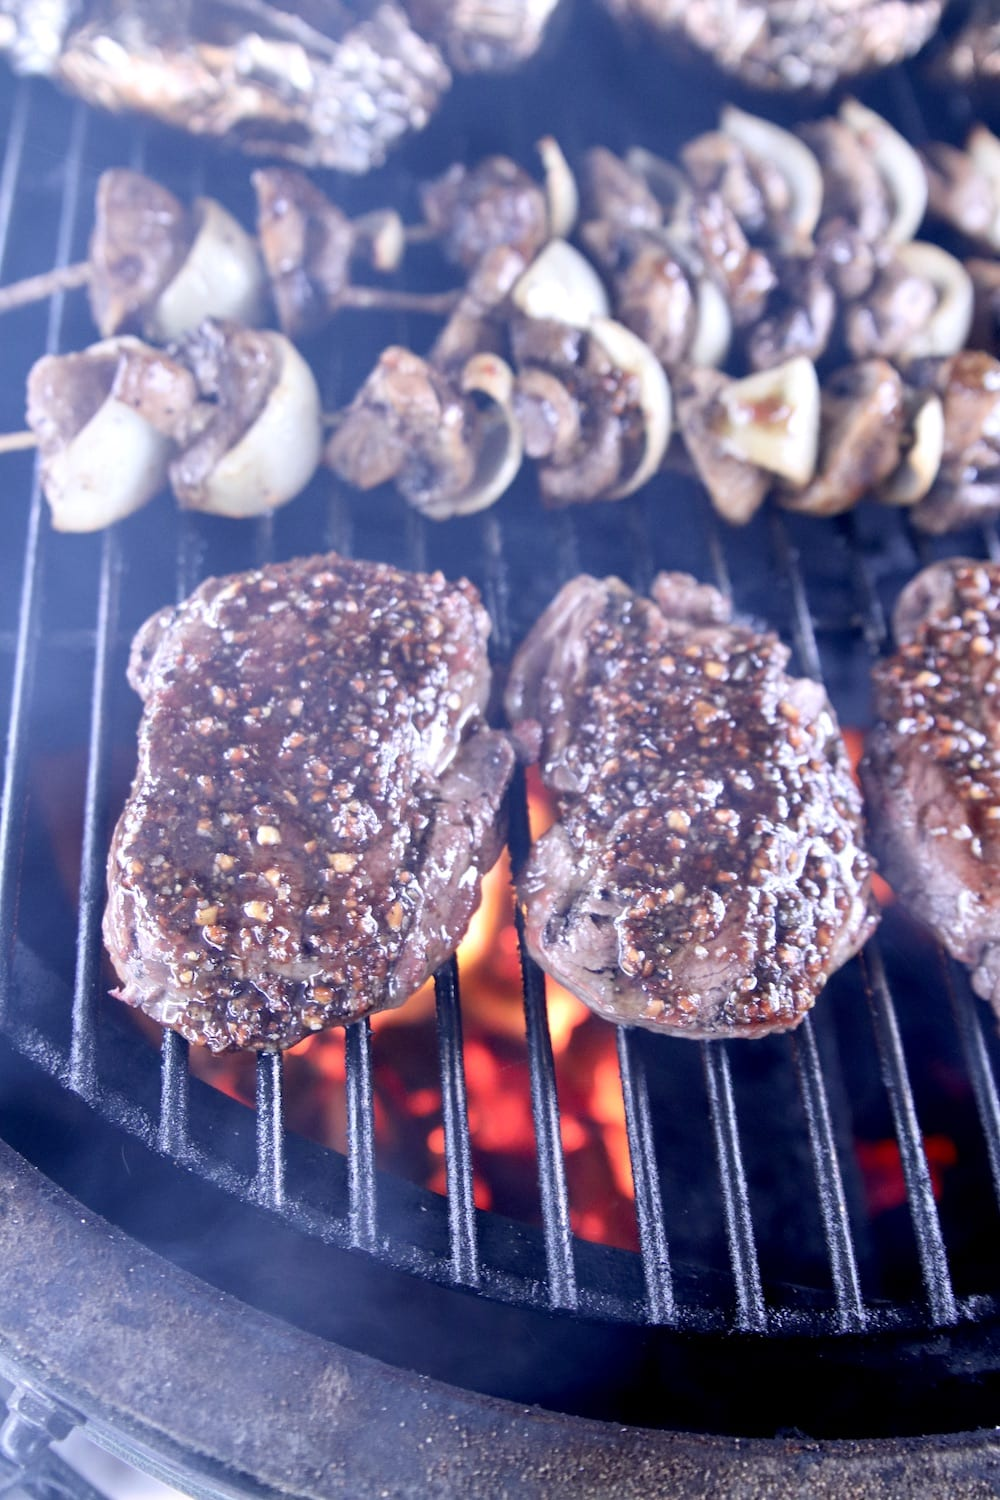 Steaks, mushroom skewers and foil wrapped potatoes on a grill